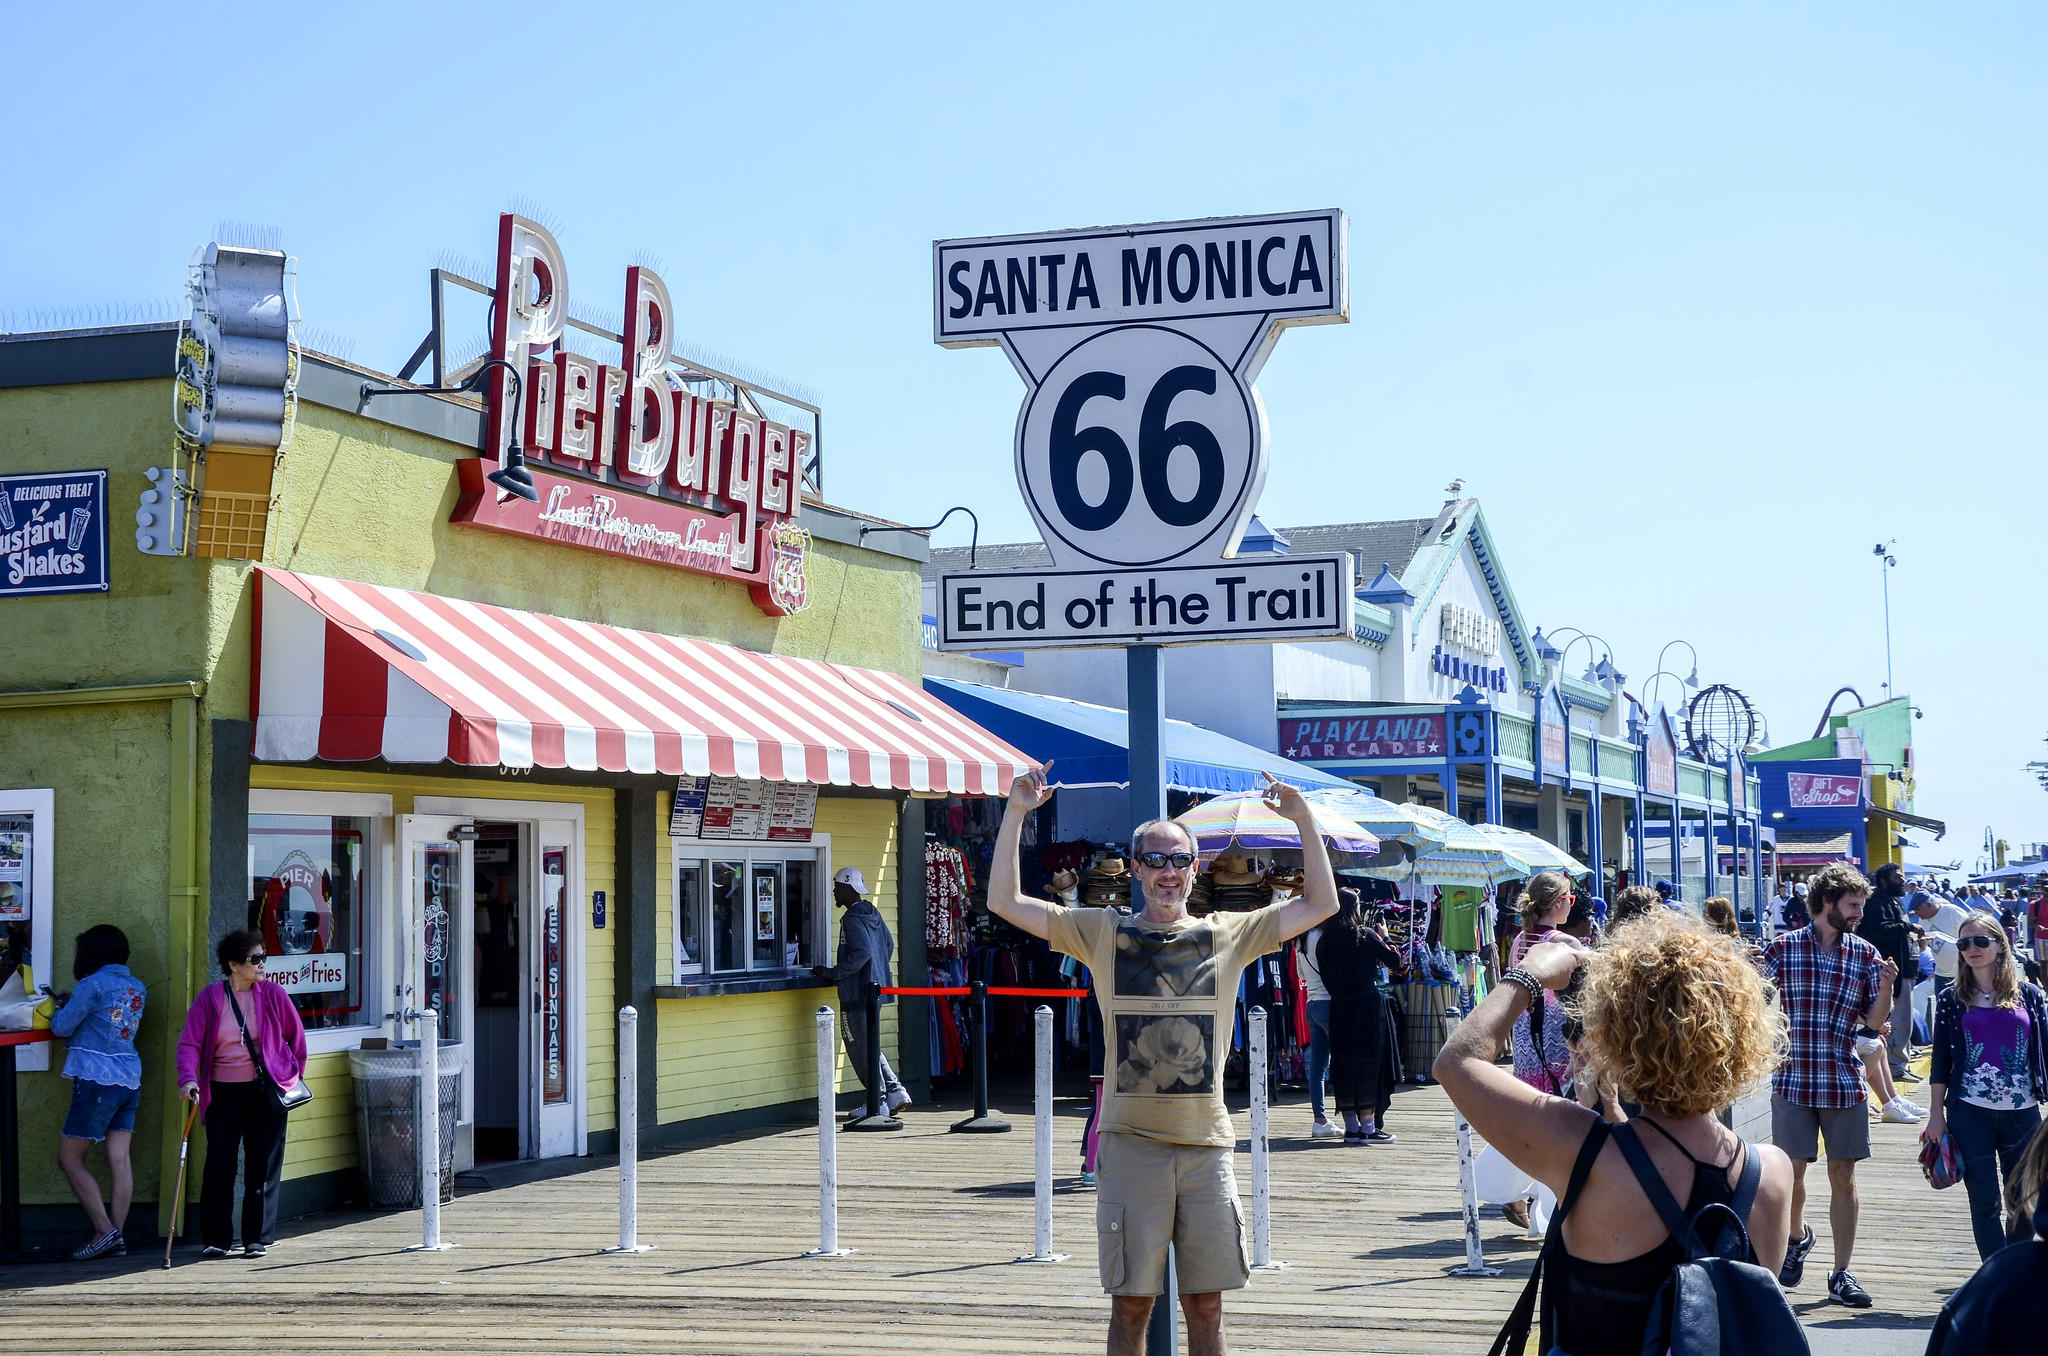 A man poses for a photo in front of the Route 66 sign on Santa Monica Pier.